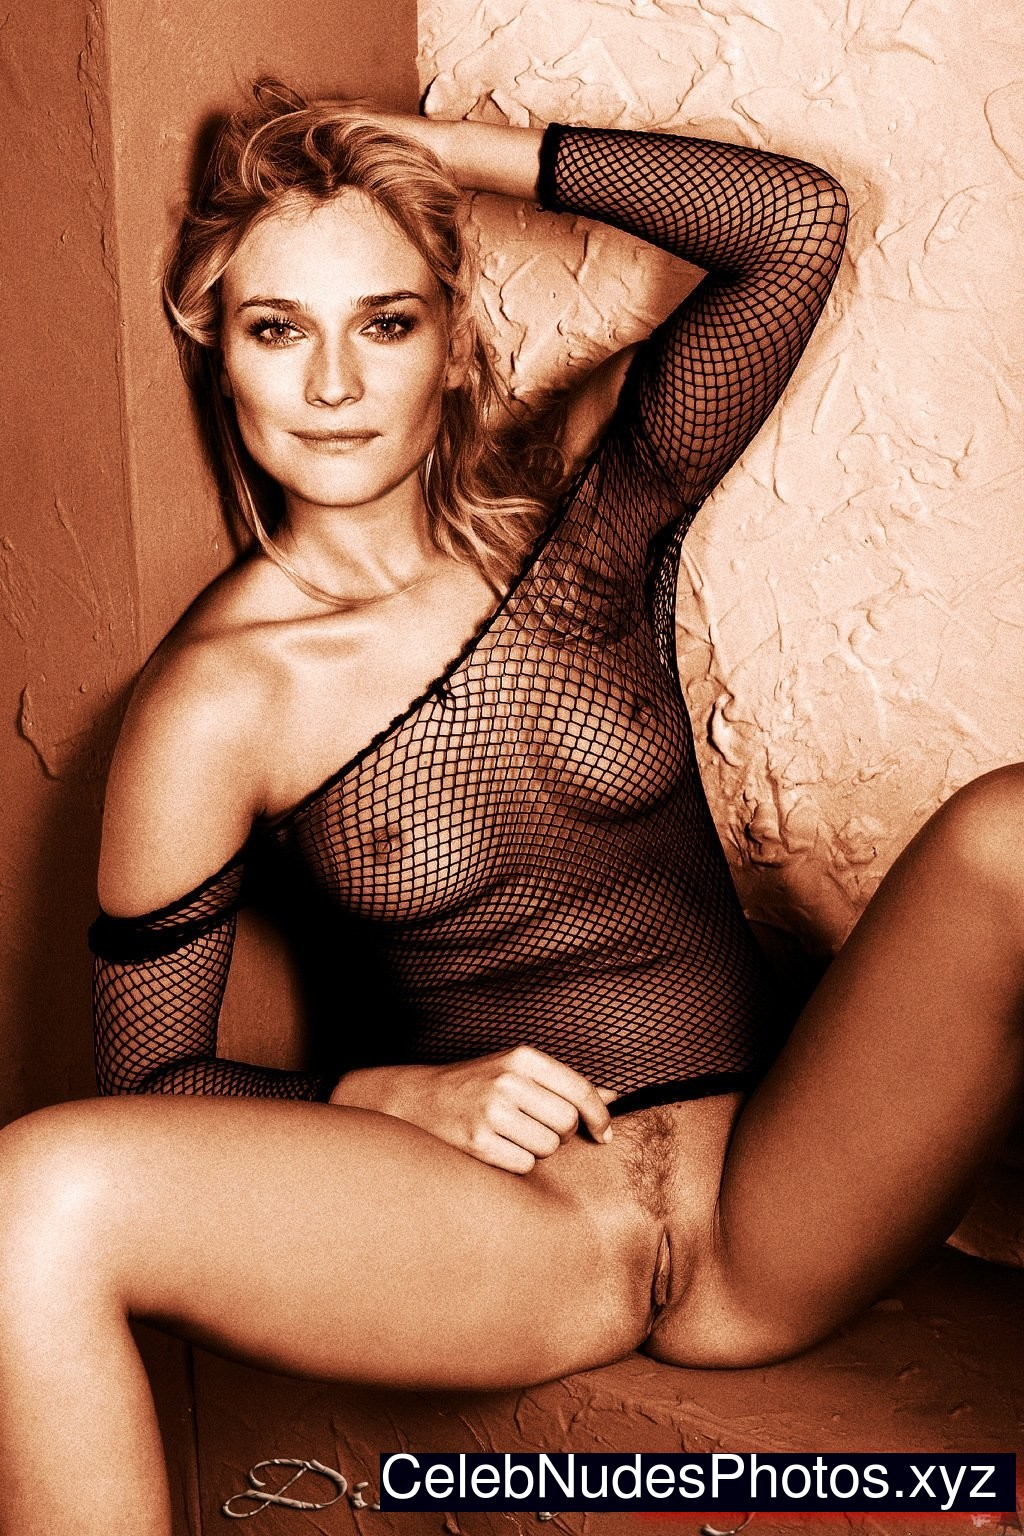 of diane kruger nude actress photos